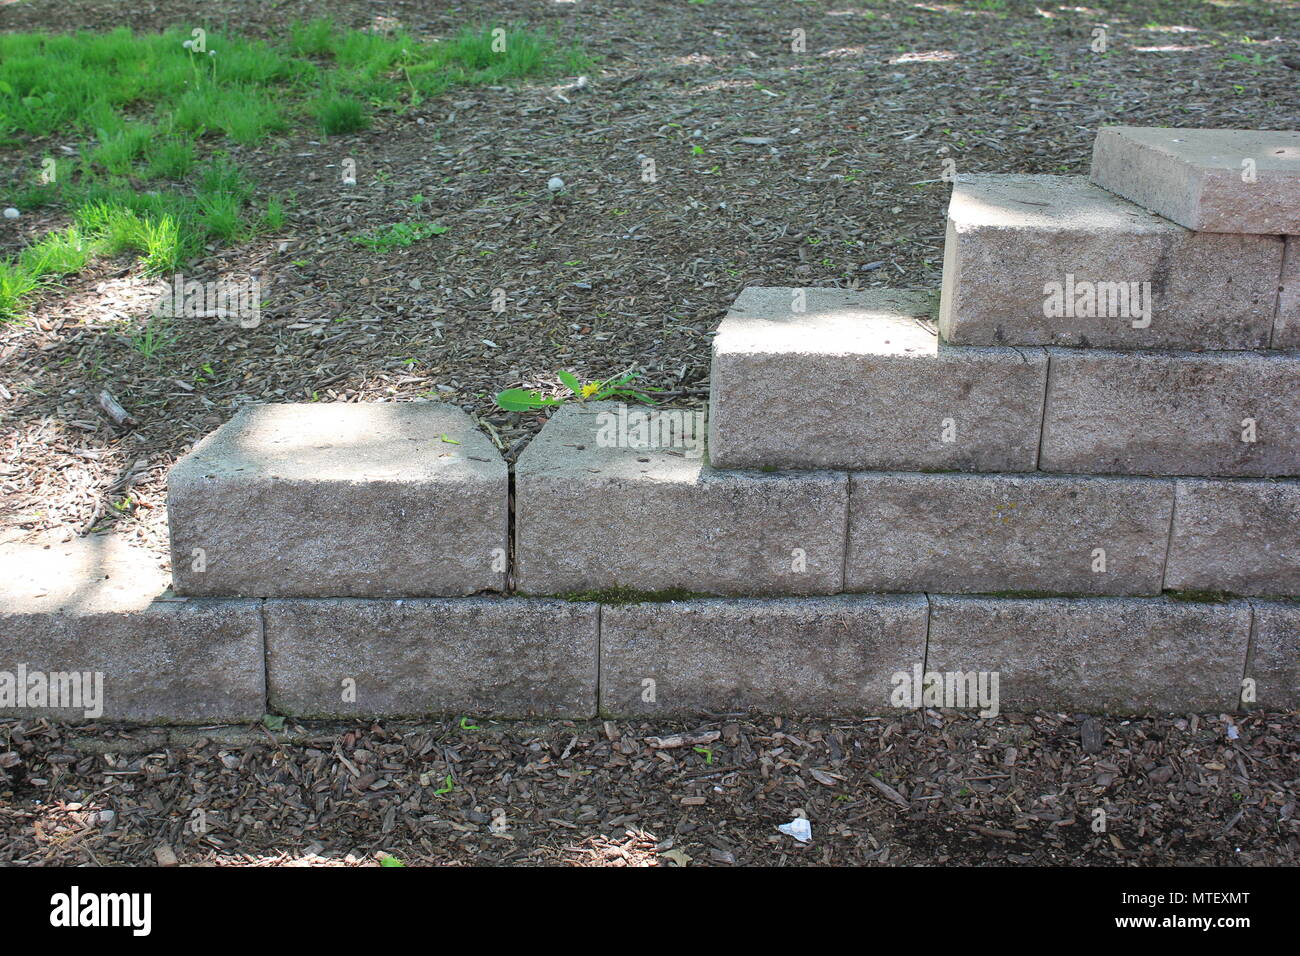 Professionally landscaped stairs located in Golf Mill Park in small-town Niles, Illinois. - Stock Image